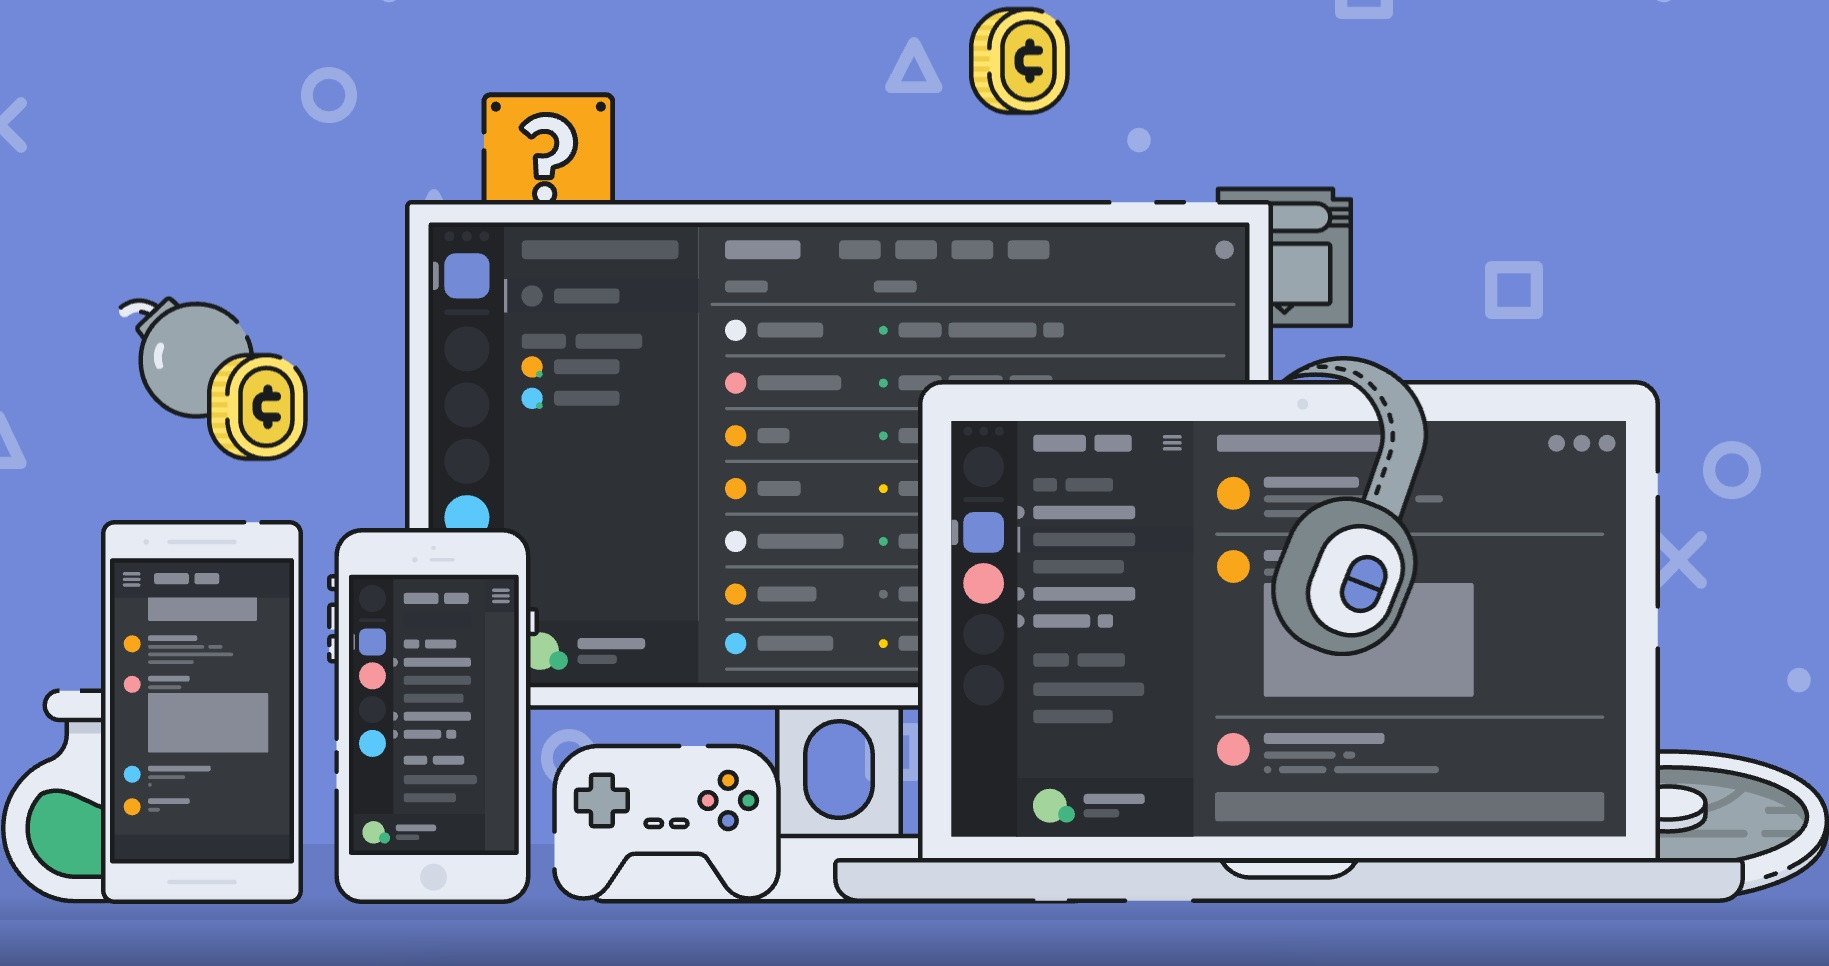 Many former PS4 Communities users have moved on to Discord, though some find it less convenient.